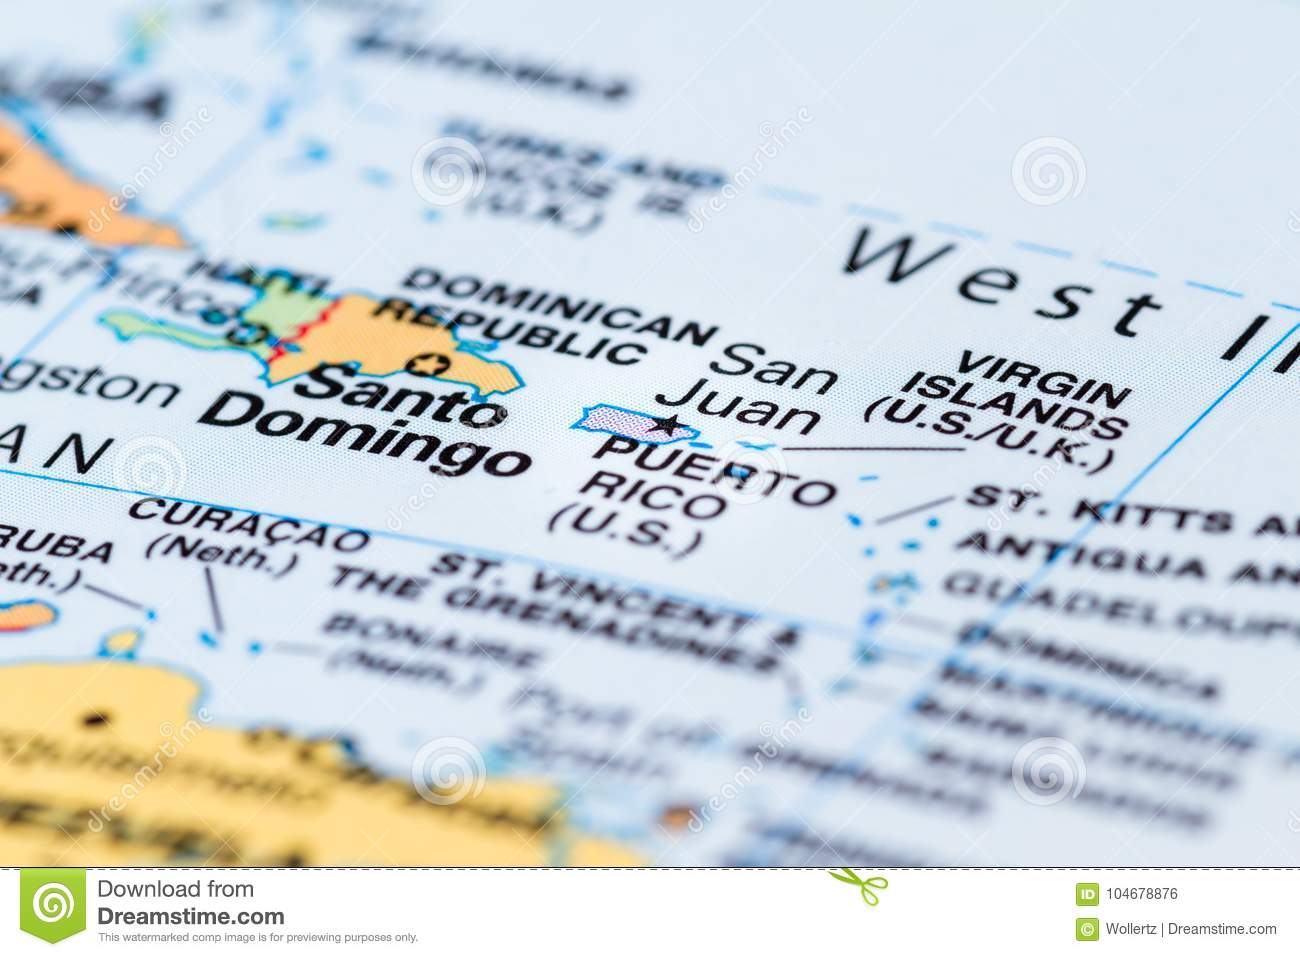 Puerto Rico on a map stock photo. Image of mapping, hurricane ...